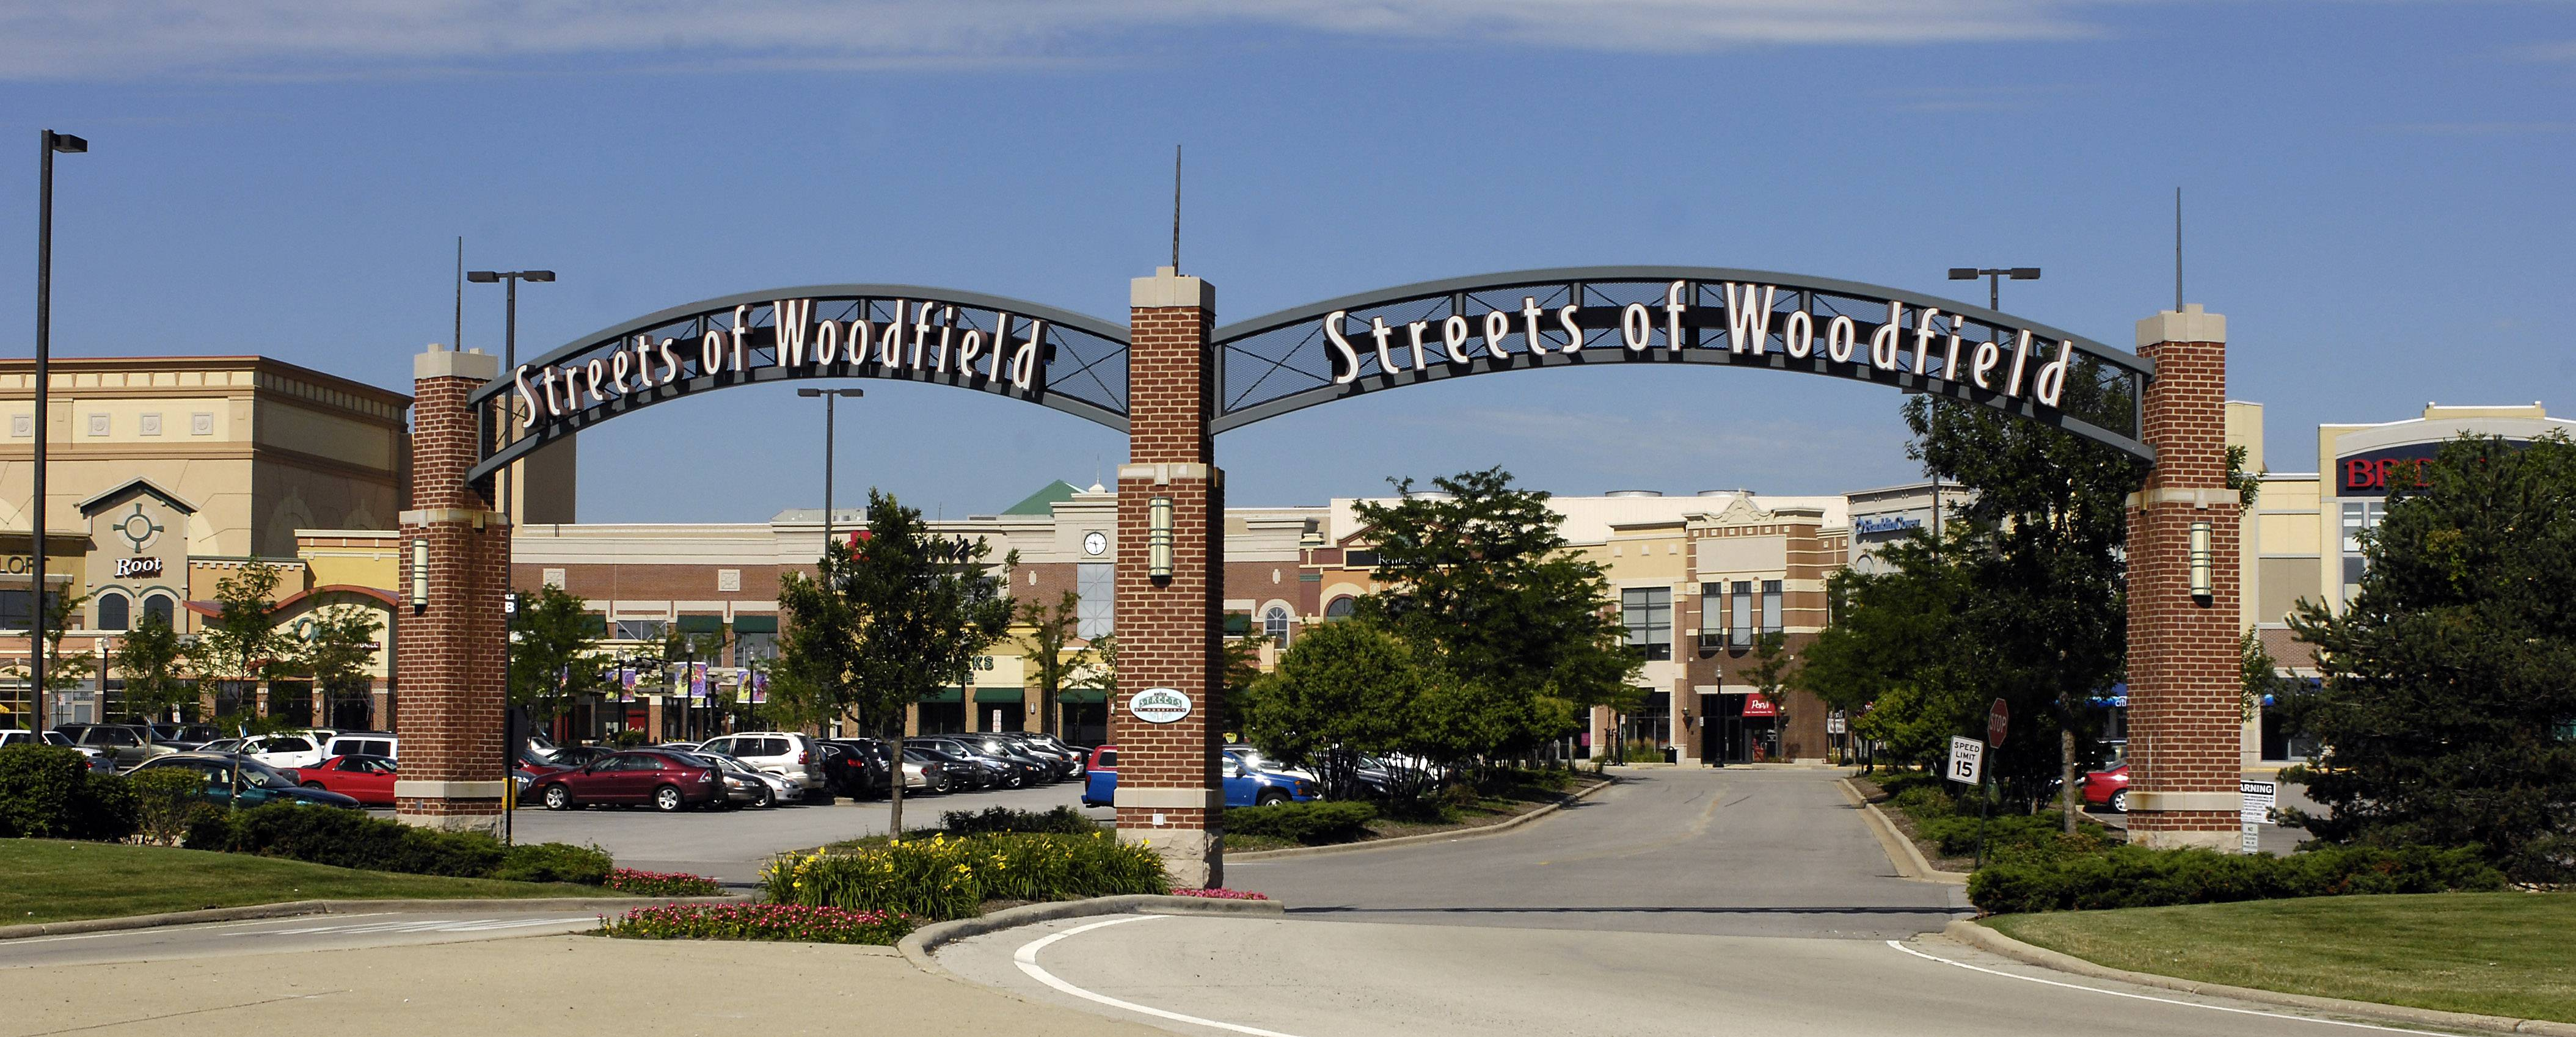 Schaumburg village trustees are weighing a measure that would allow the installation of two 400-square-foot LED display signs at the Streets of Woodfield. Some officials have expressed concerns about the signs distracting drivers, and whether it would set a precedent for similar signs elsewhere in the village.